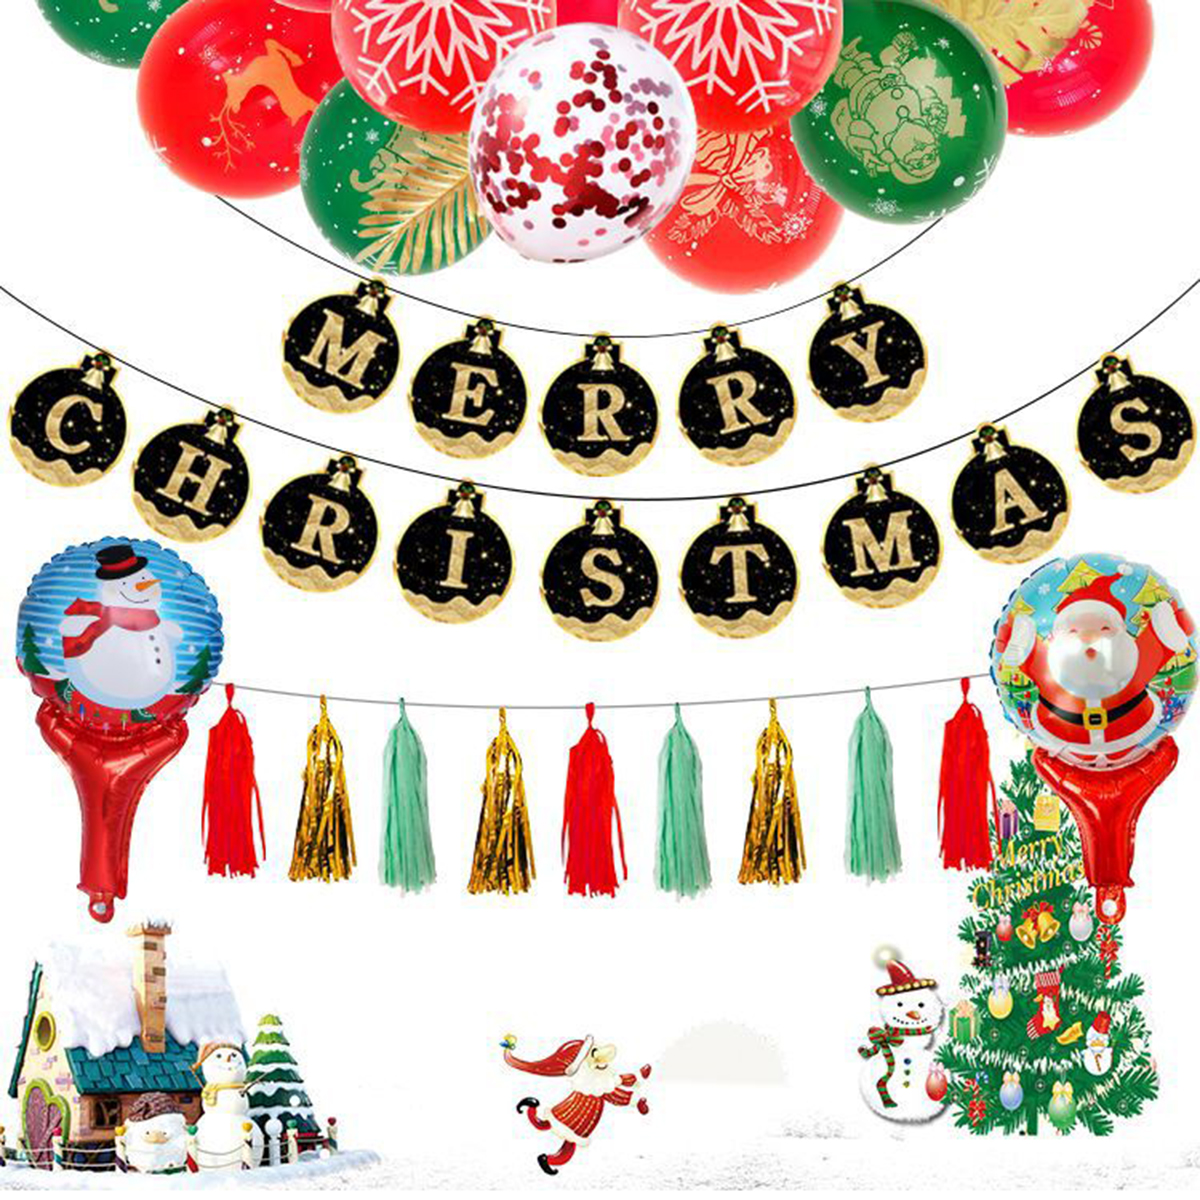 Merry Christmas Party Supplies Home Party Favor Decor Snowman & Santa Claus Balloons Banner Sequin Balloons Latex Balloons 2019